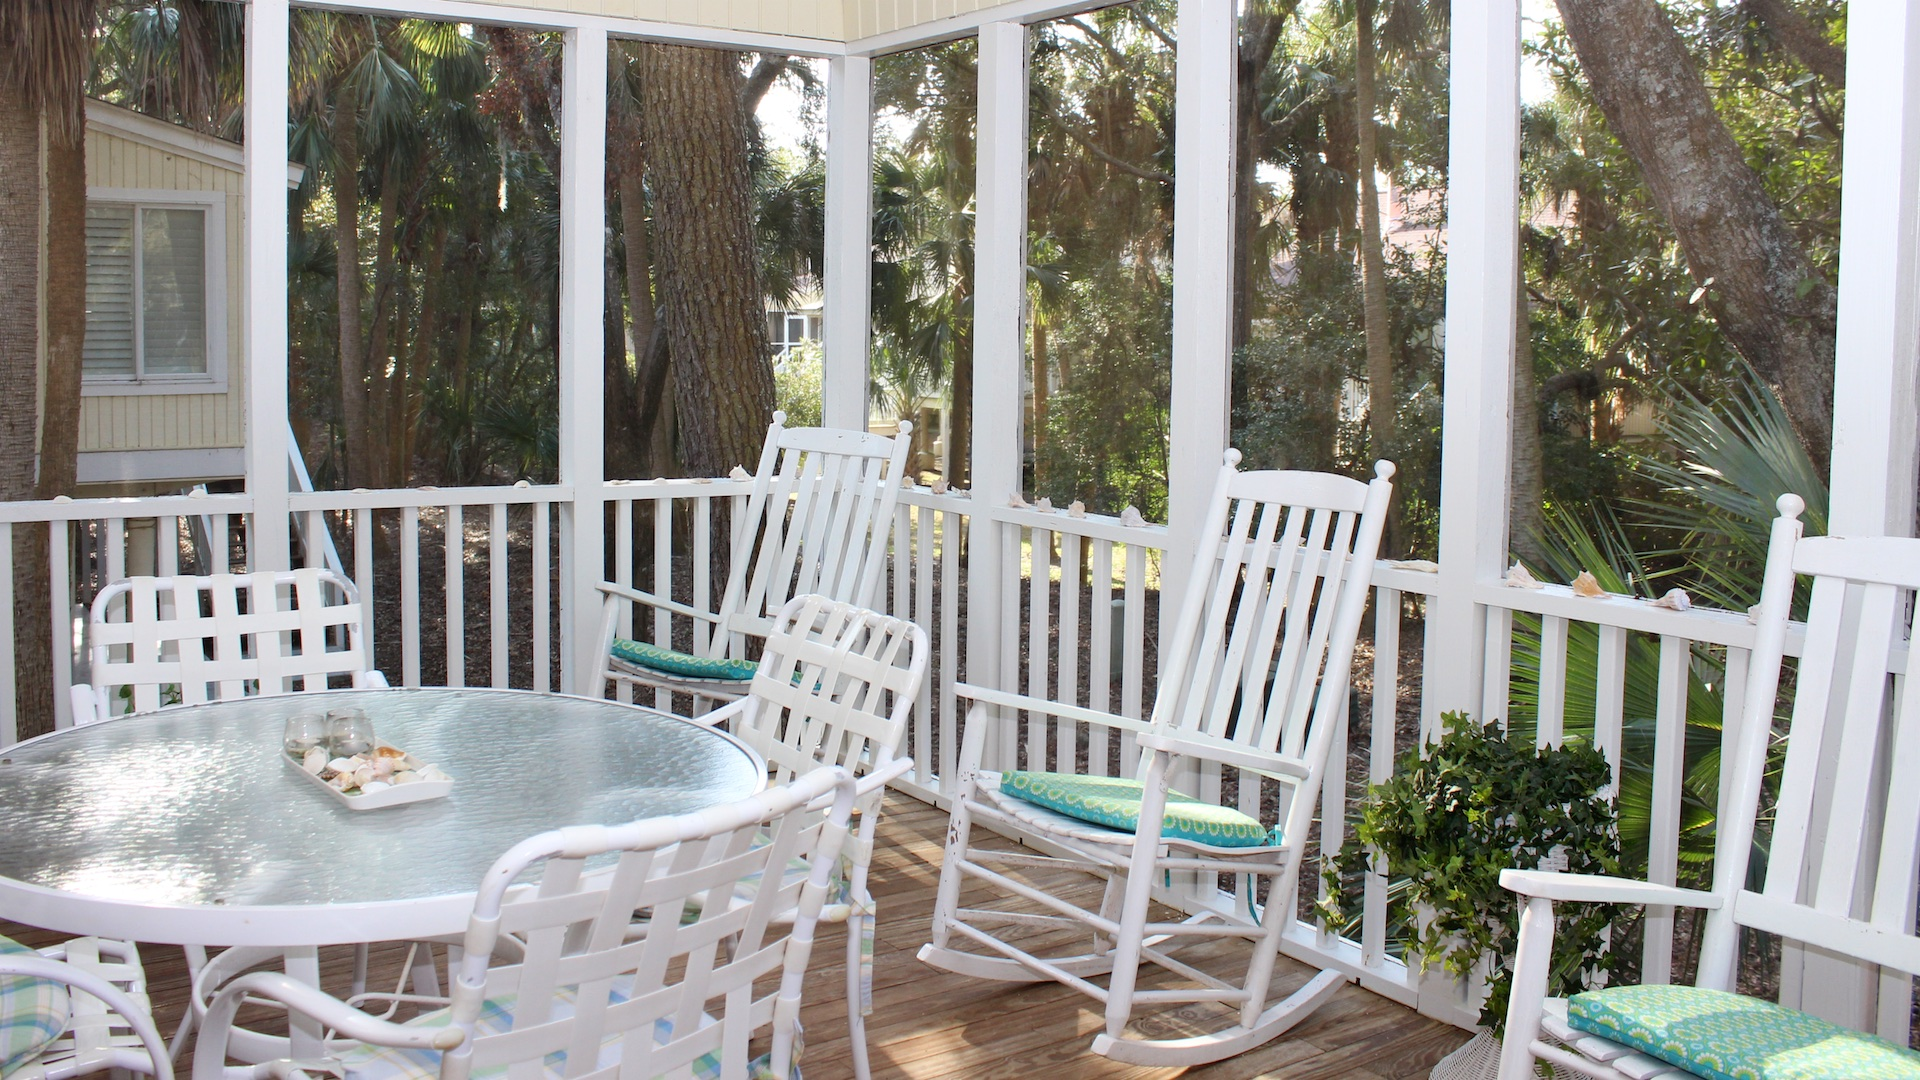 Rockers offer a soothing place to relax.